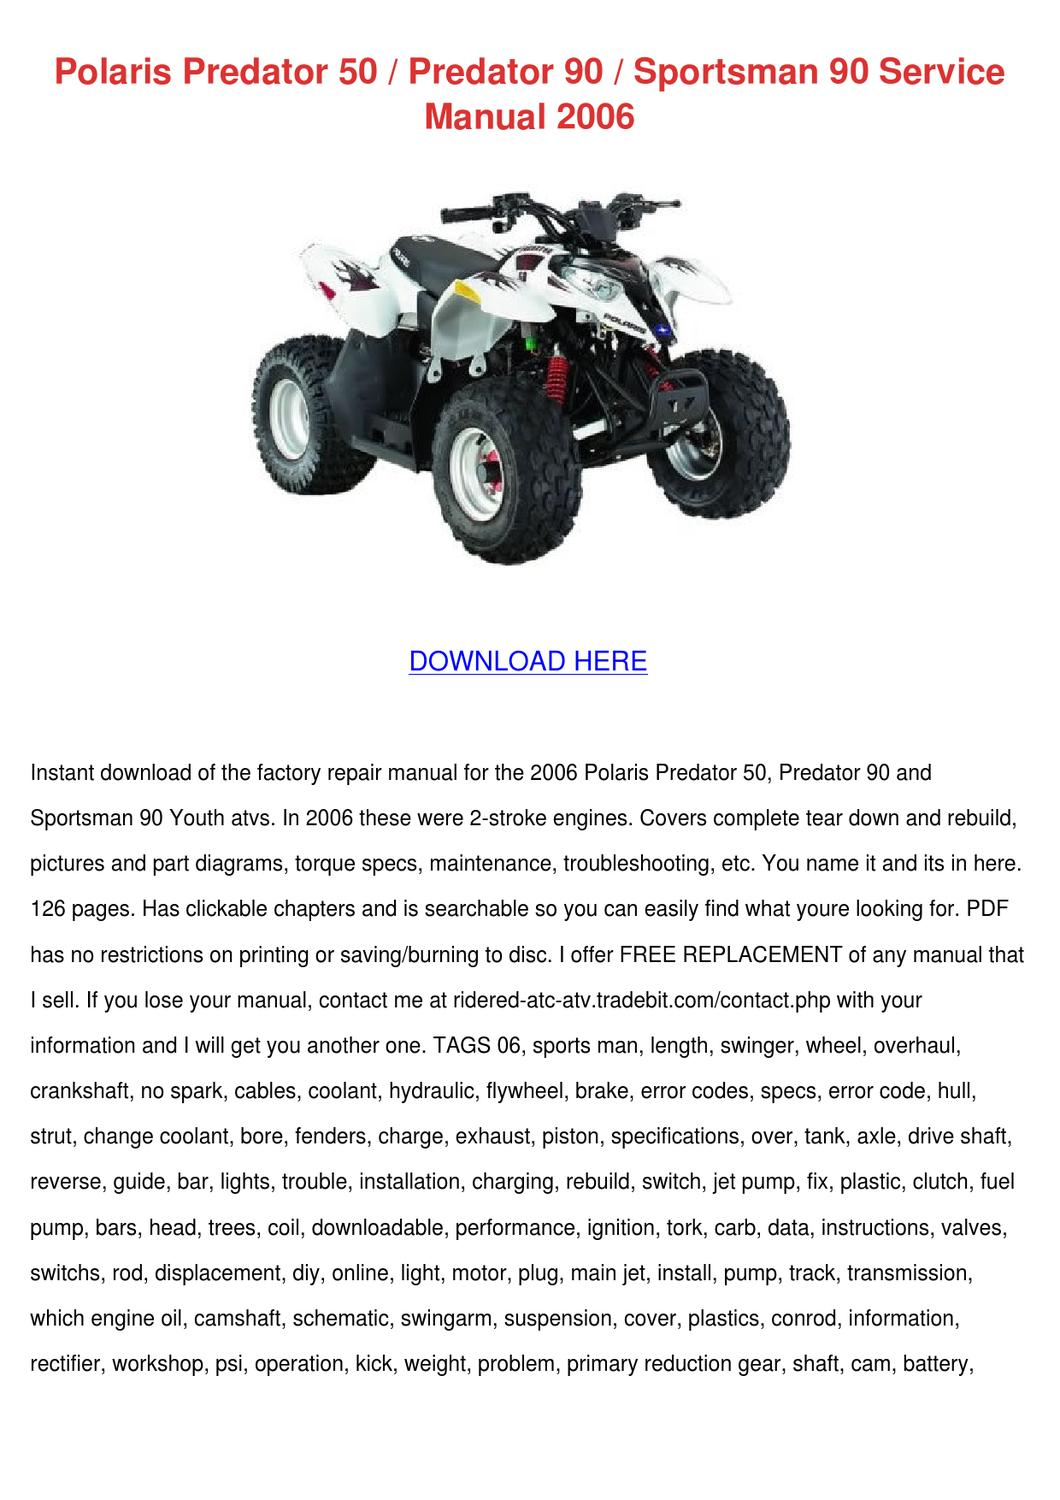 polaris predator 50 service manual